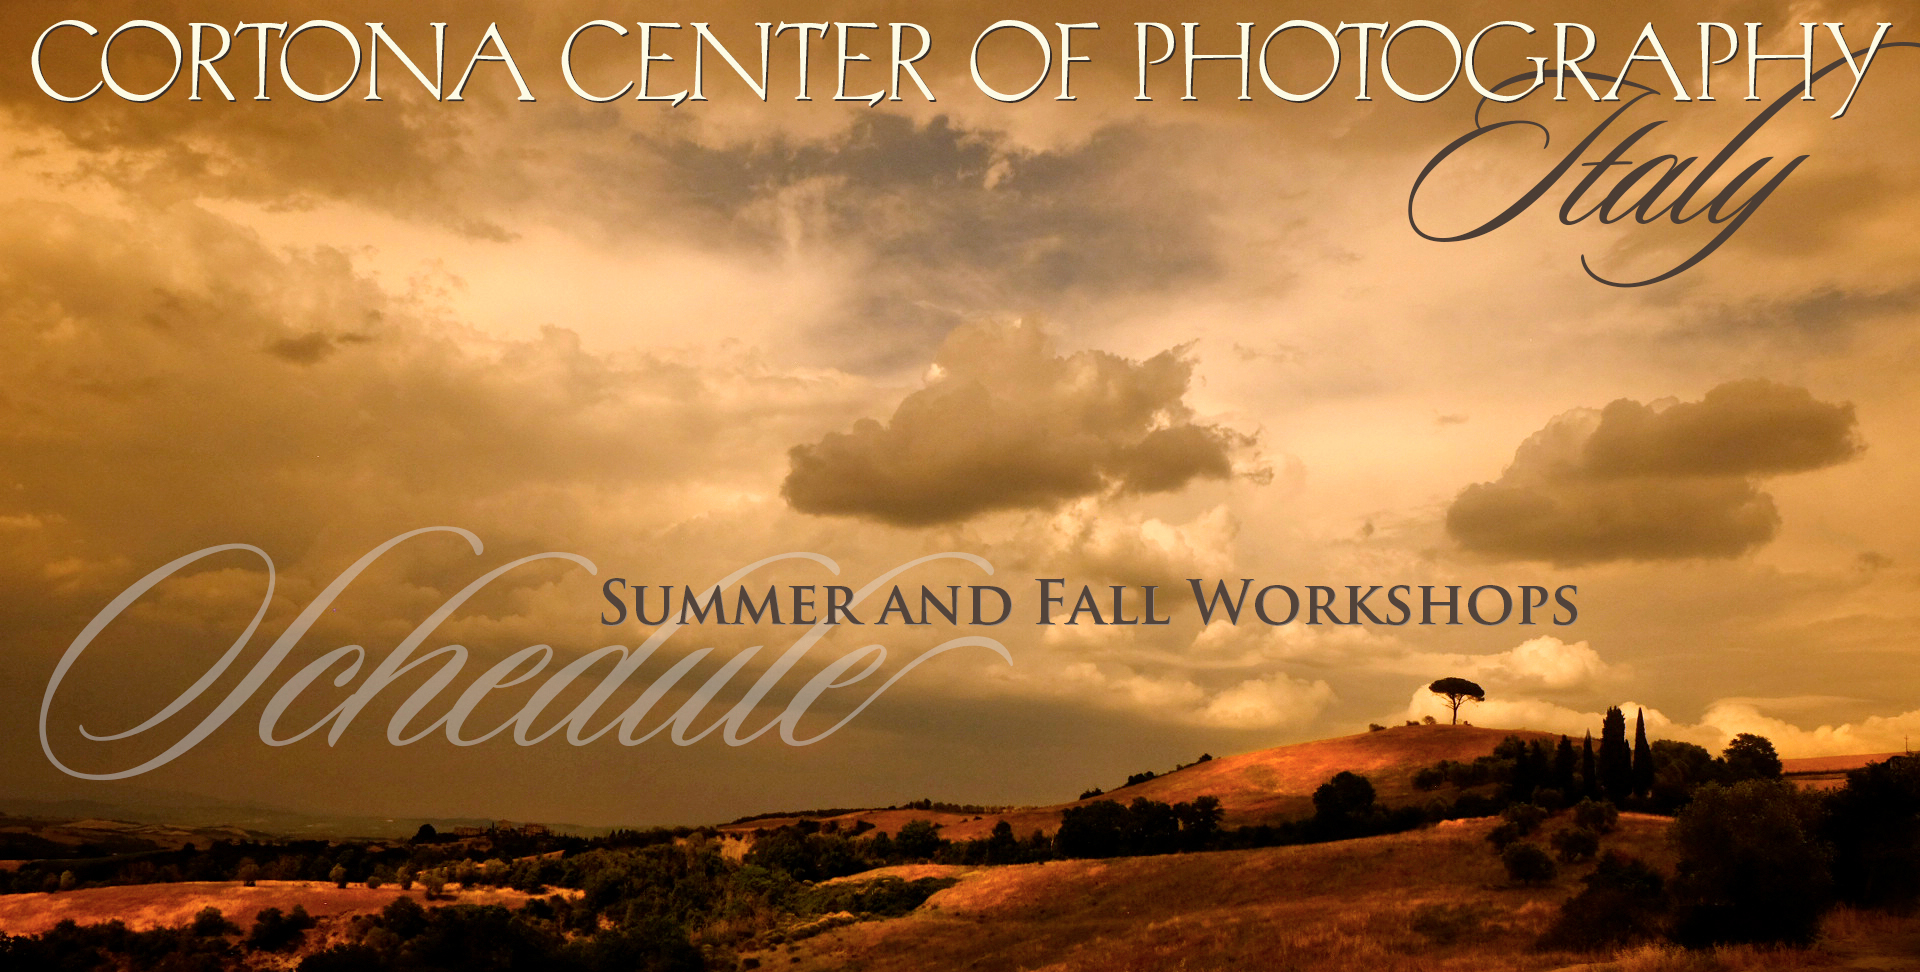 Cortona Center of Photography Italy Photo Workshop Schedule